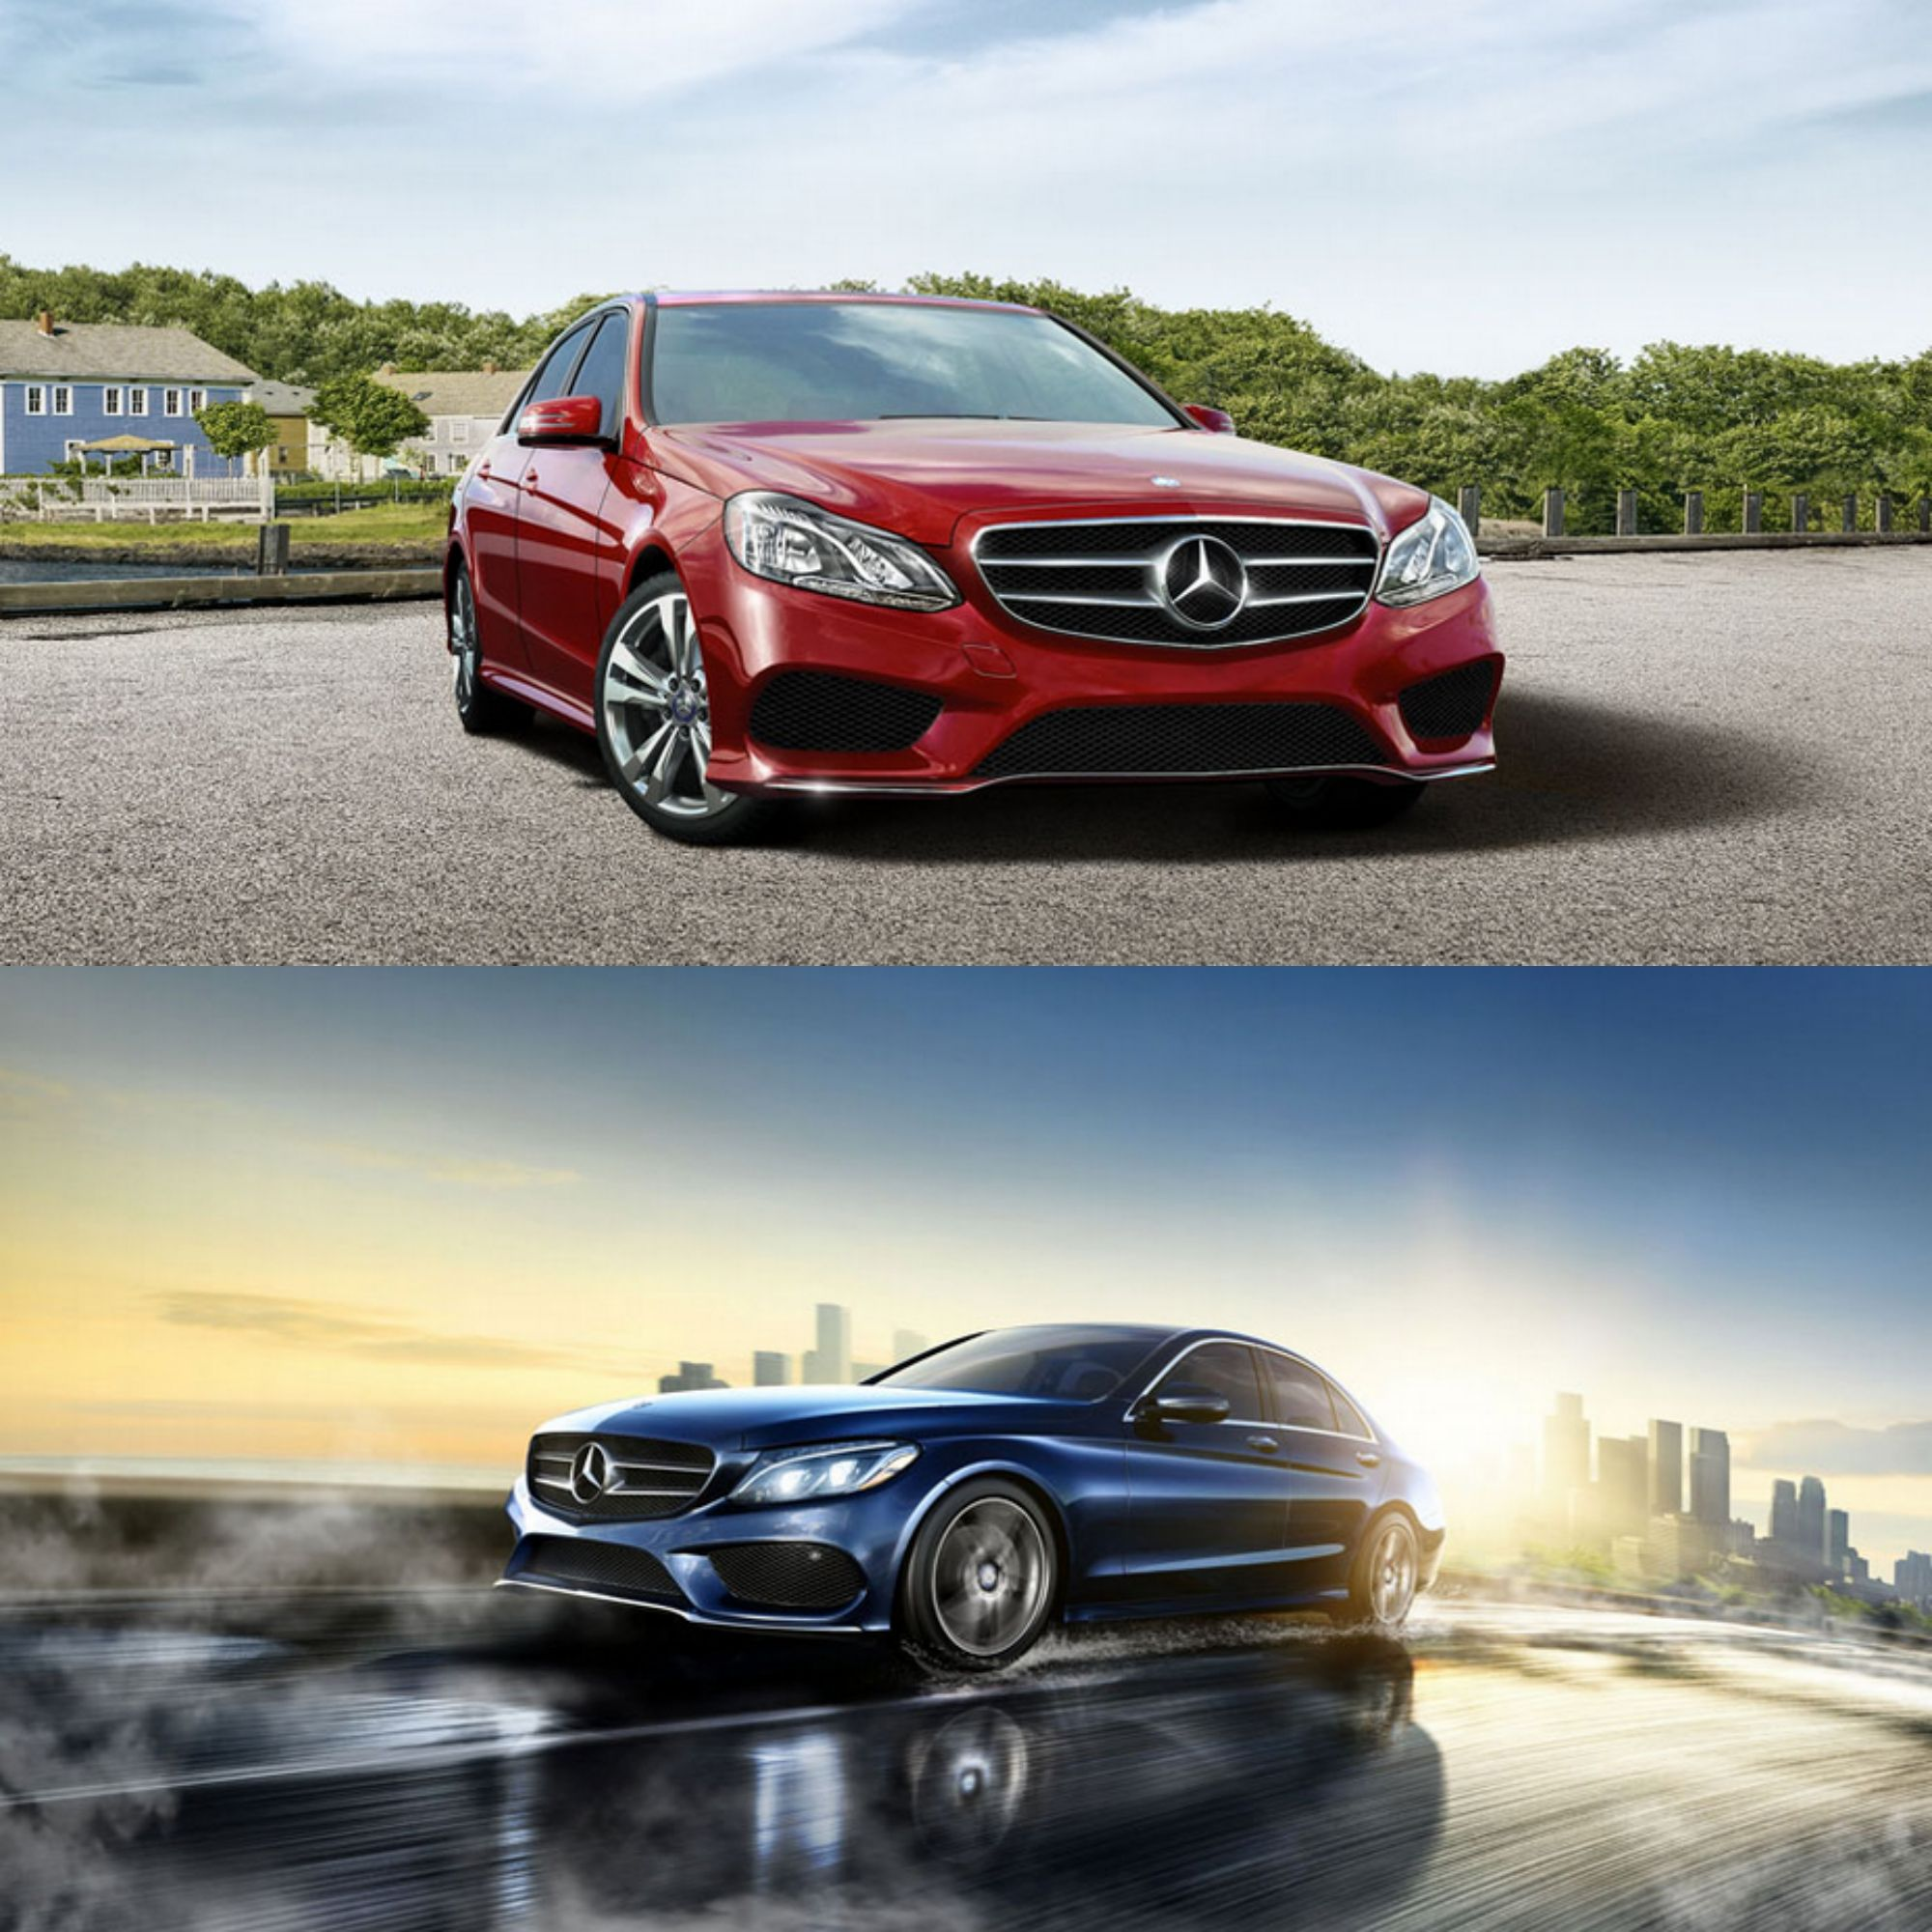 Experience Luxury At It's Finest With A Mercedes-Benz